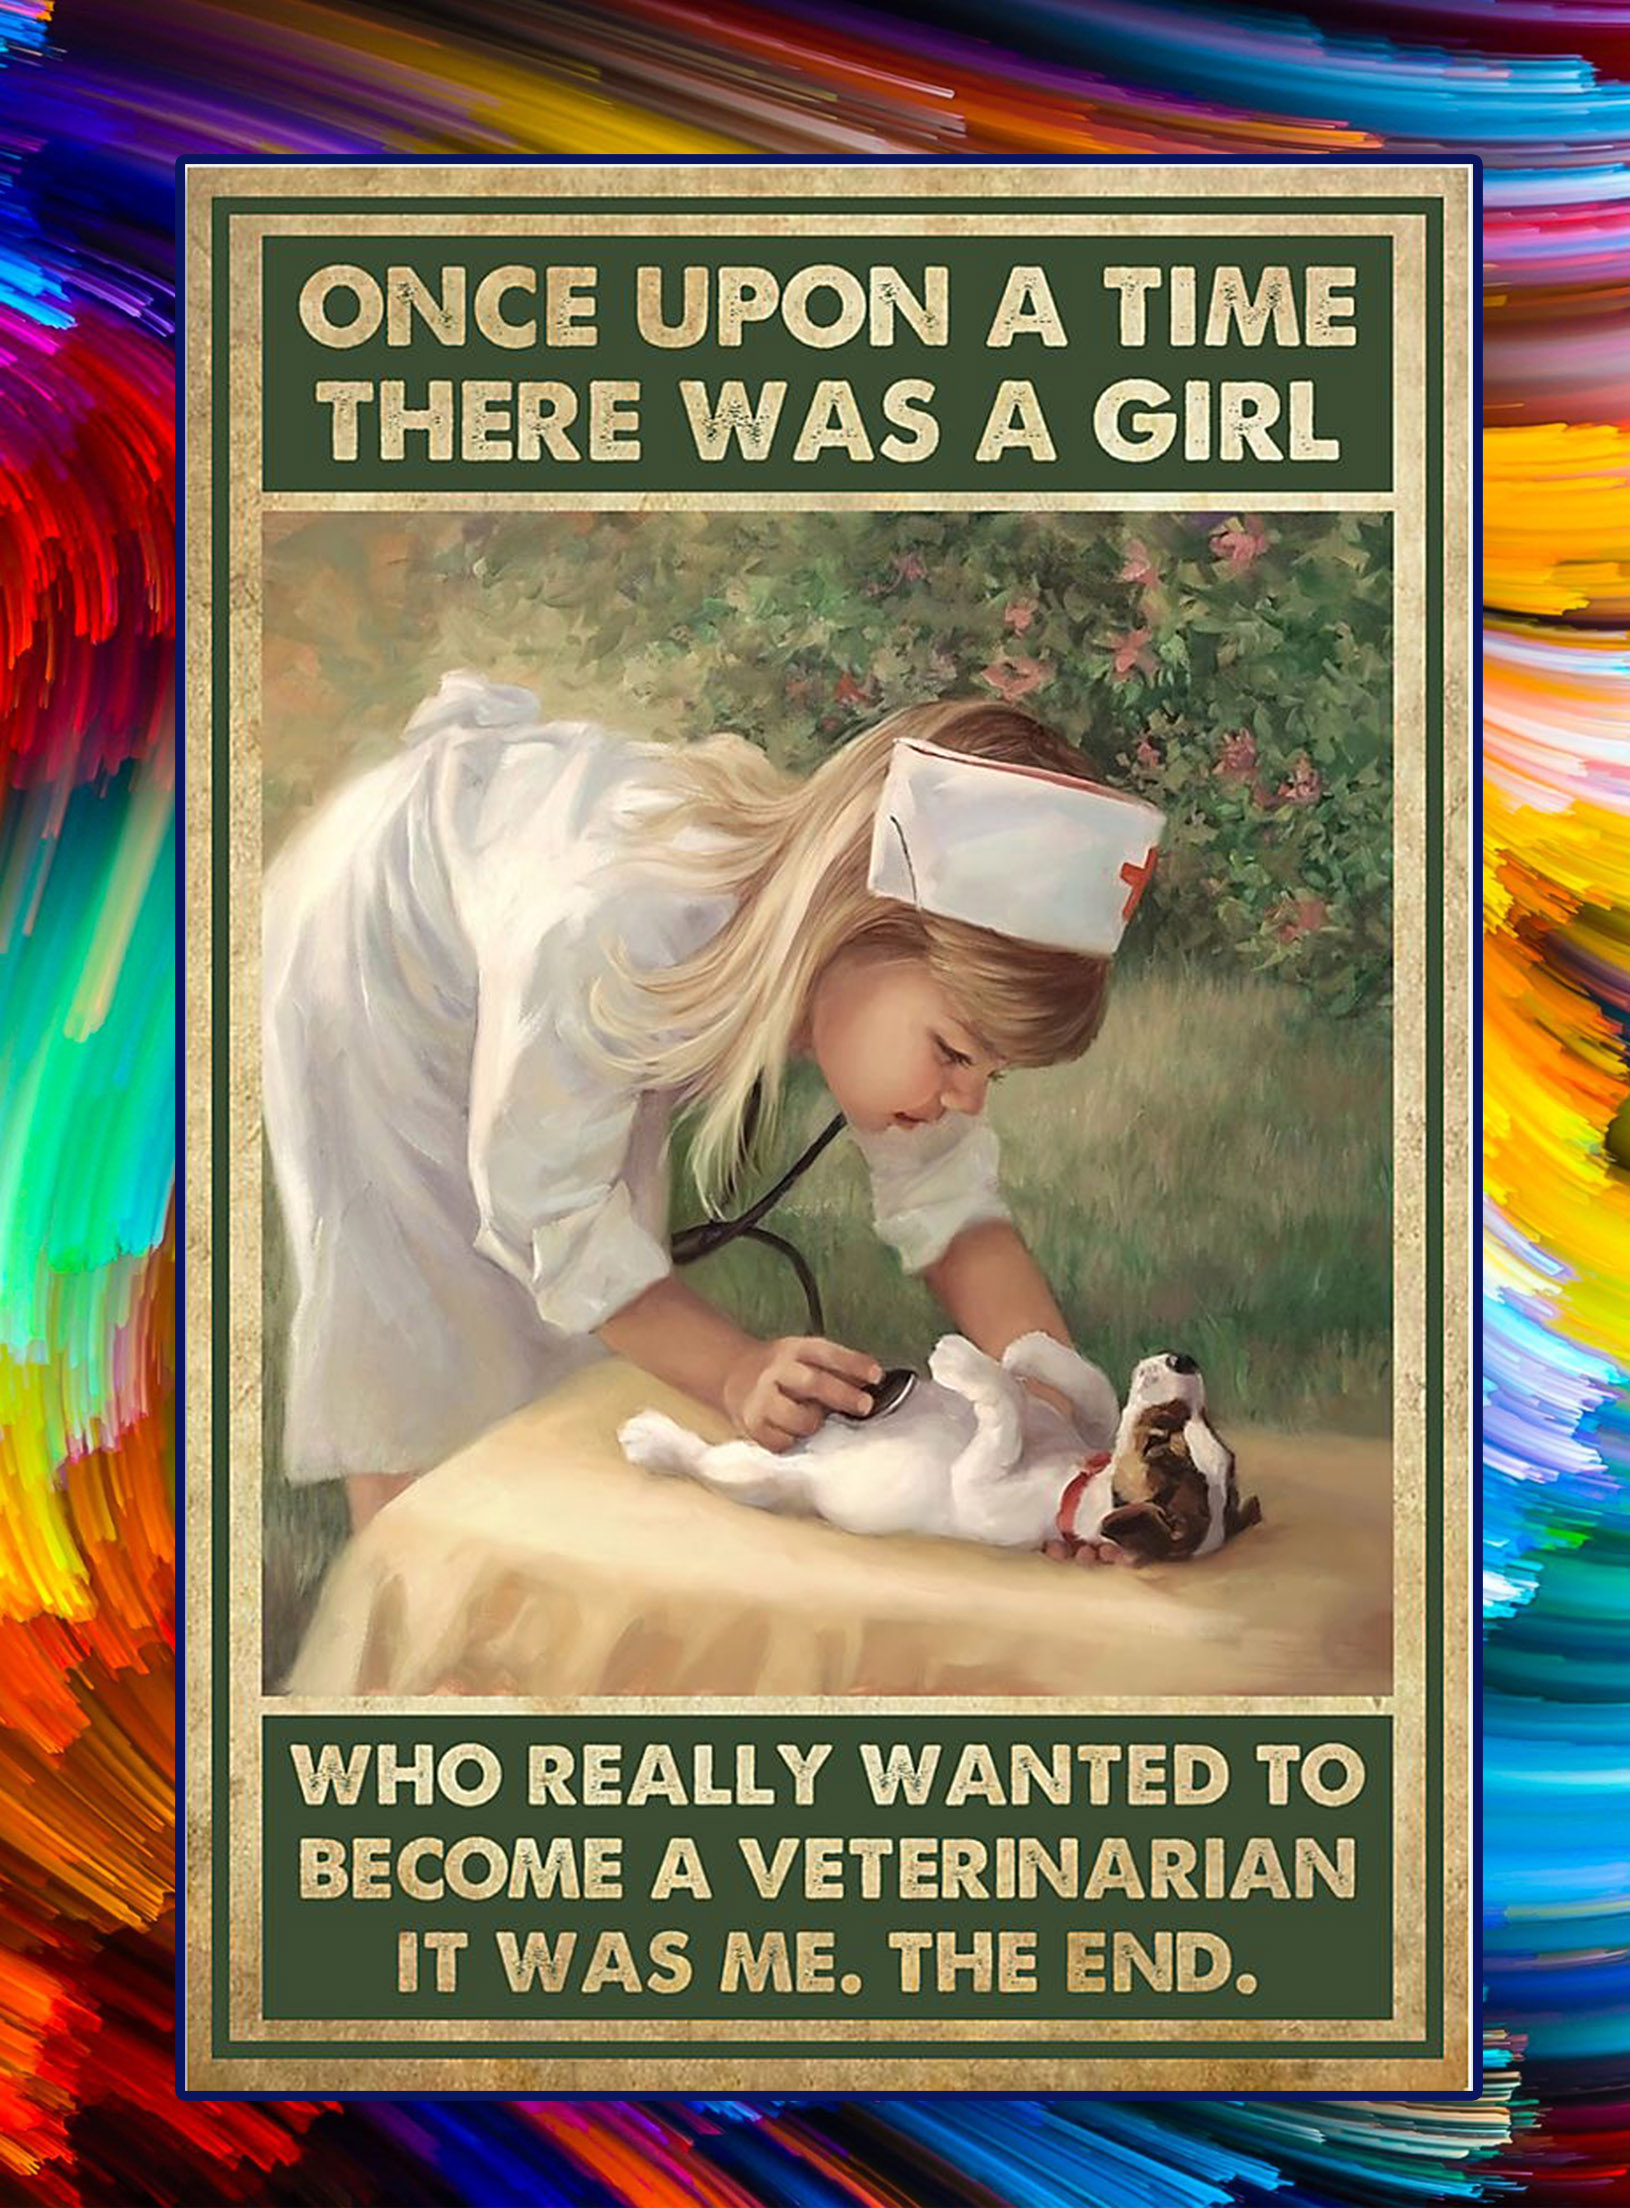 There was a girl who really wanted to become a veterinarian poster - A2